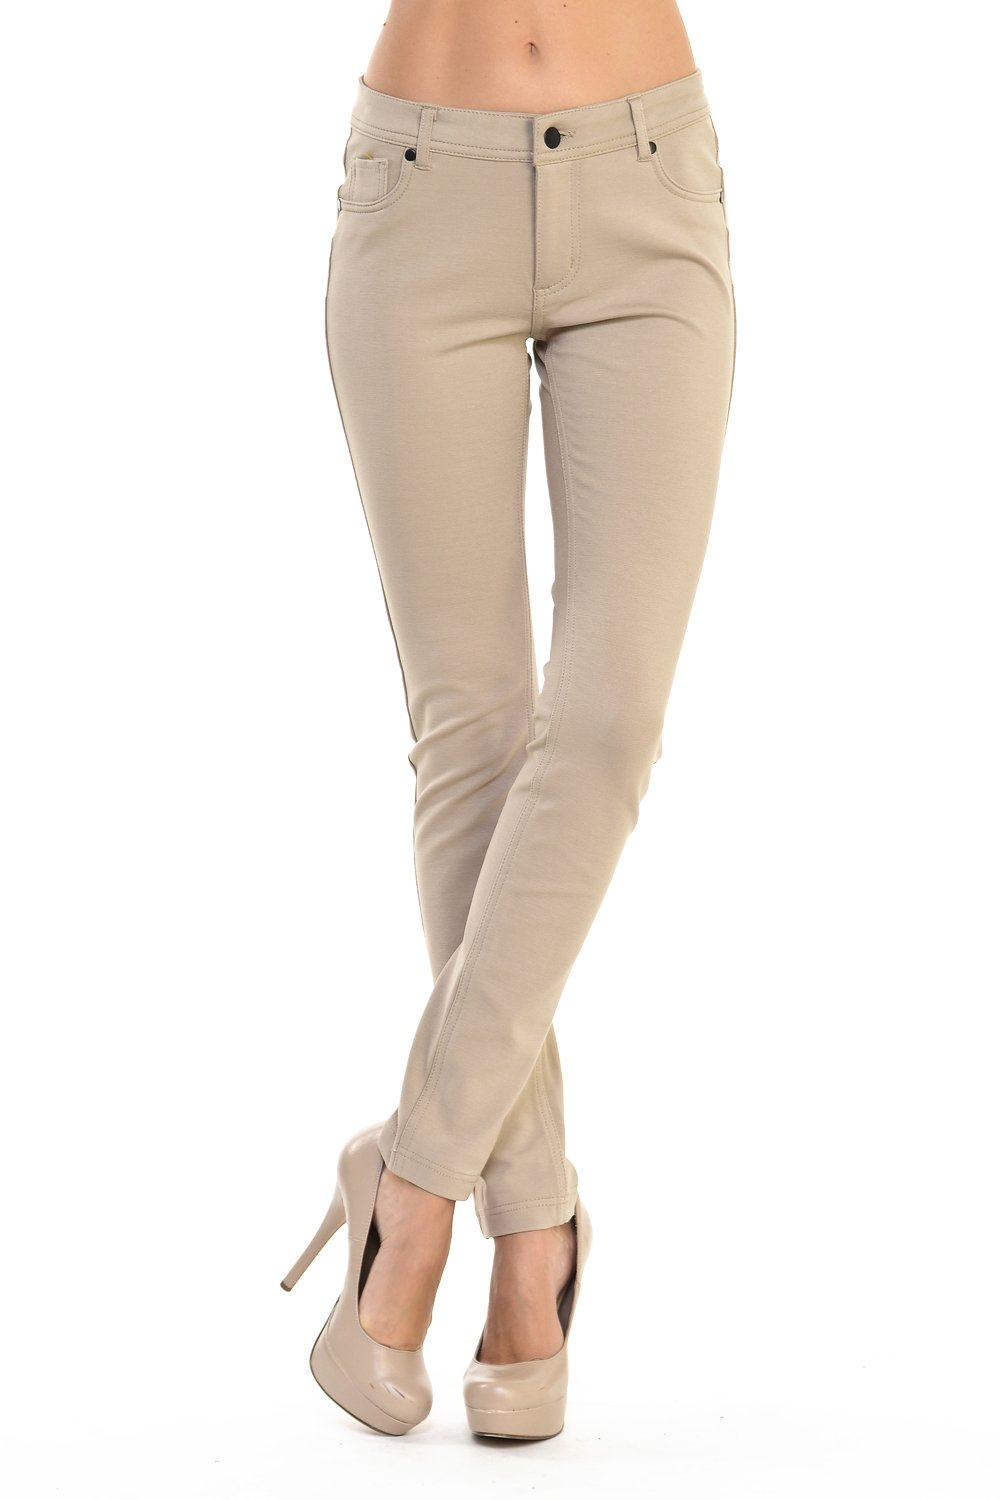 YourStyle Stretchy Slim Fit Skinny Long Jegging Pants, Basic Pants(S-3XL) (Small, New Khaki)